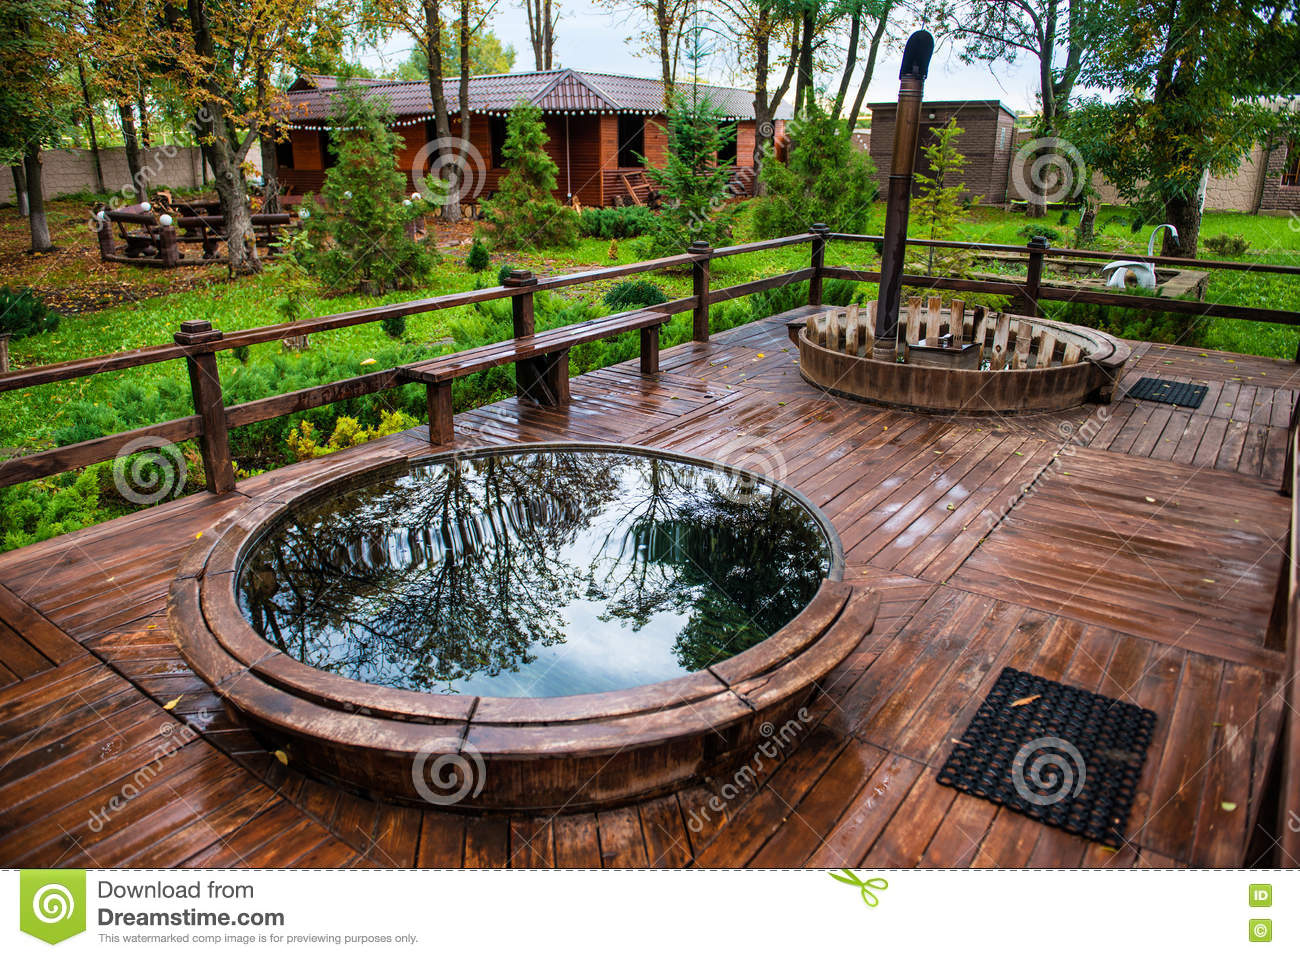 Sauna Pool And Jacuzzi With Rest Recreation Area Outdoor